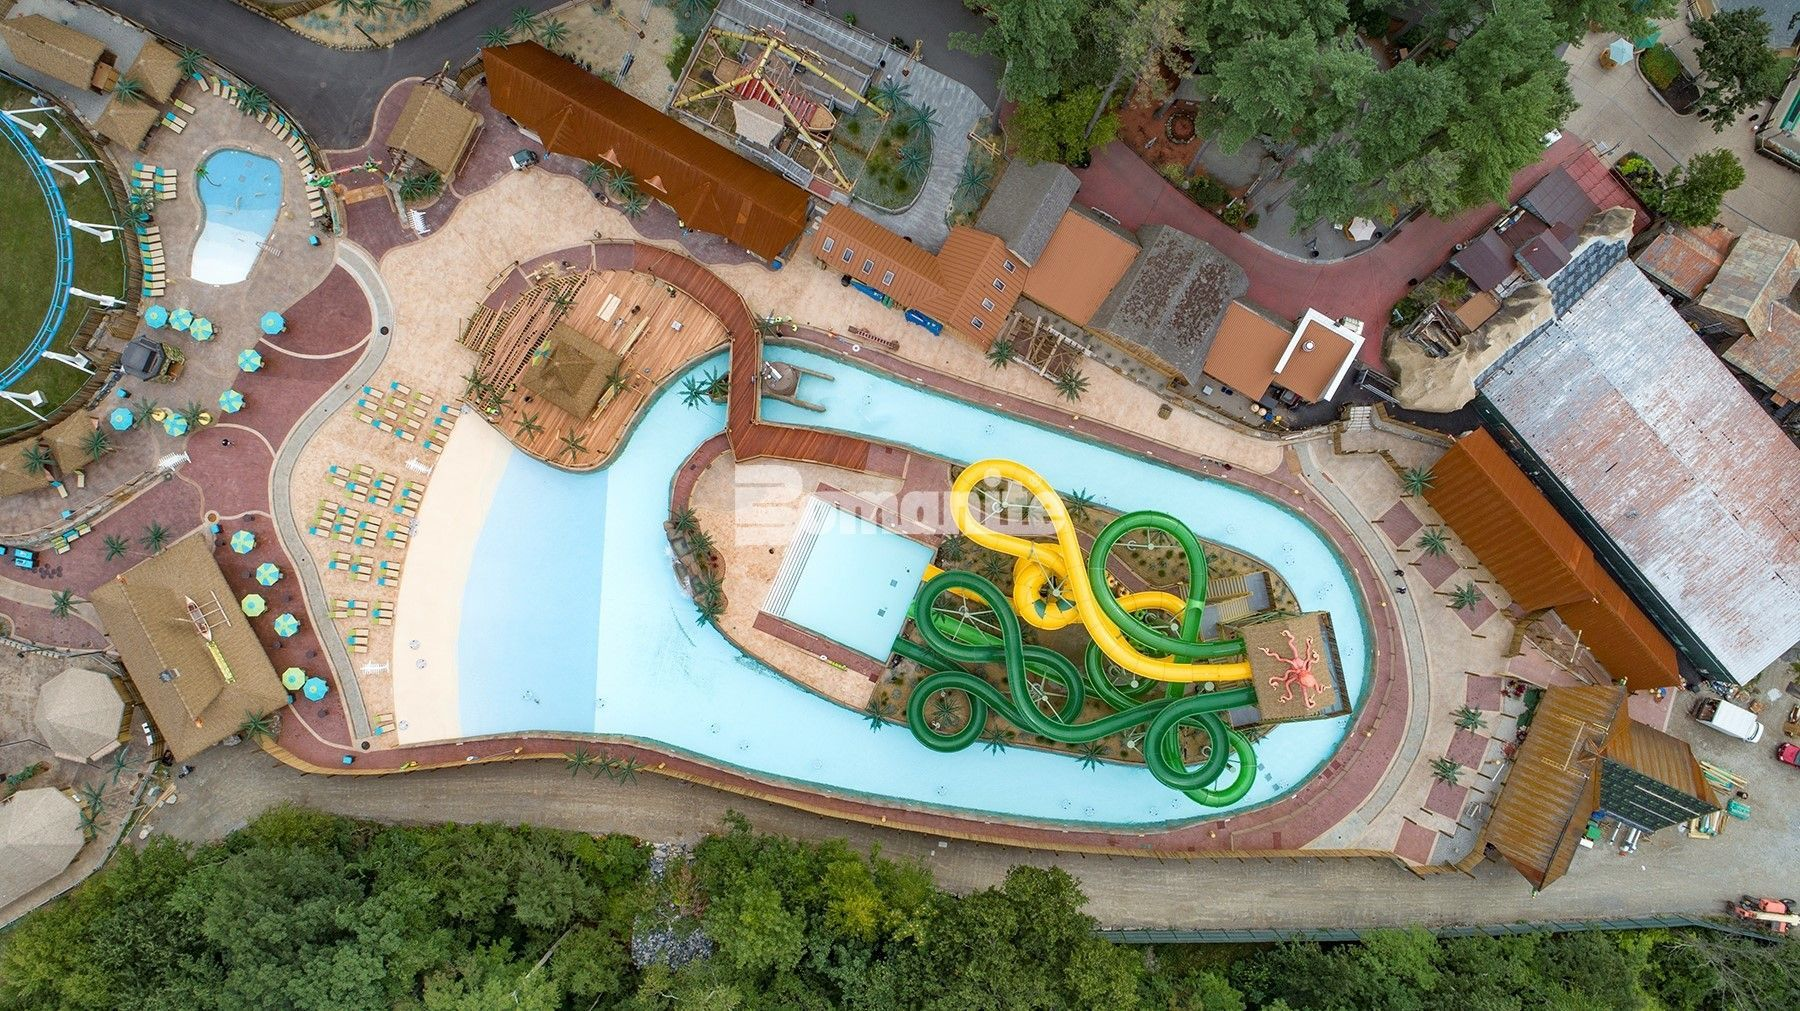 Canobie Lake Park Castaway Island Expansion in Salem, NH using Bomanite Imprint Systems with Bomacron and multiple patterns installed by Harrington Bomanite.